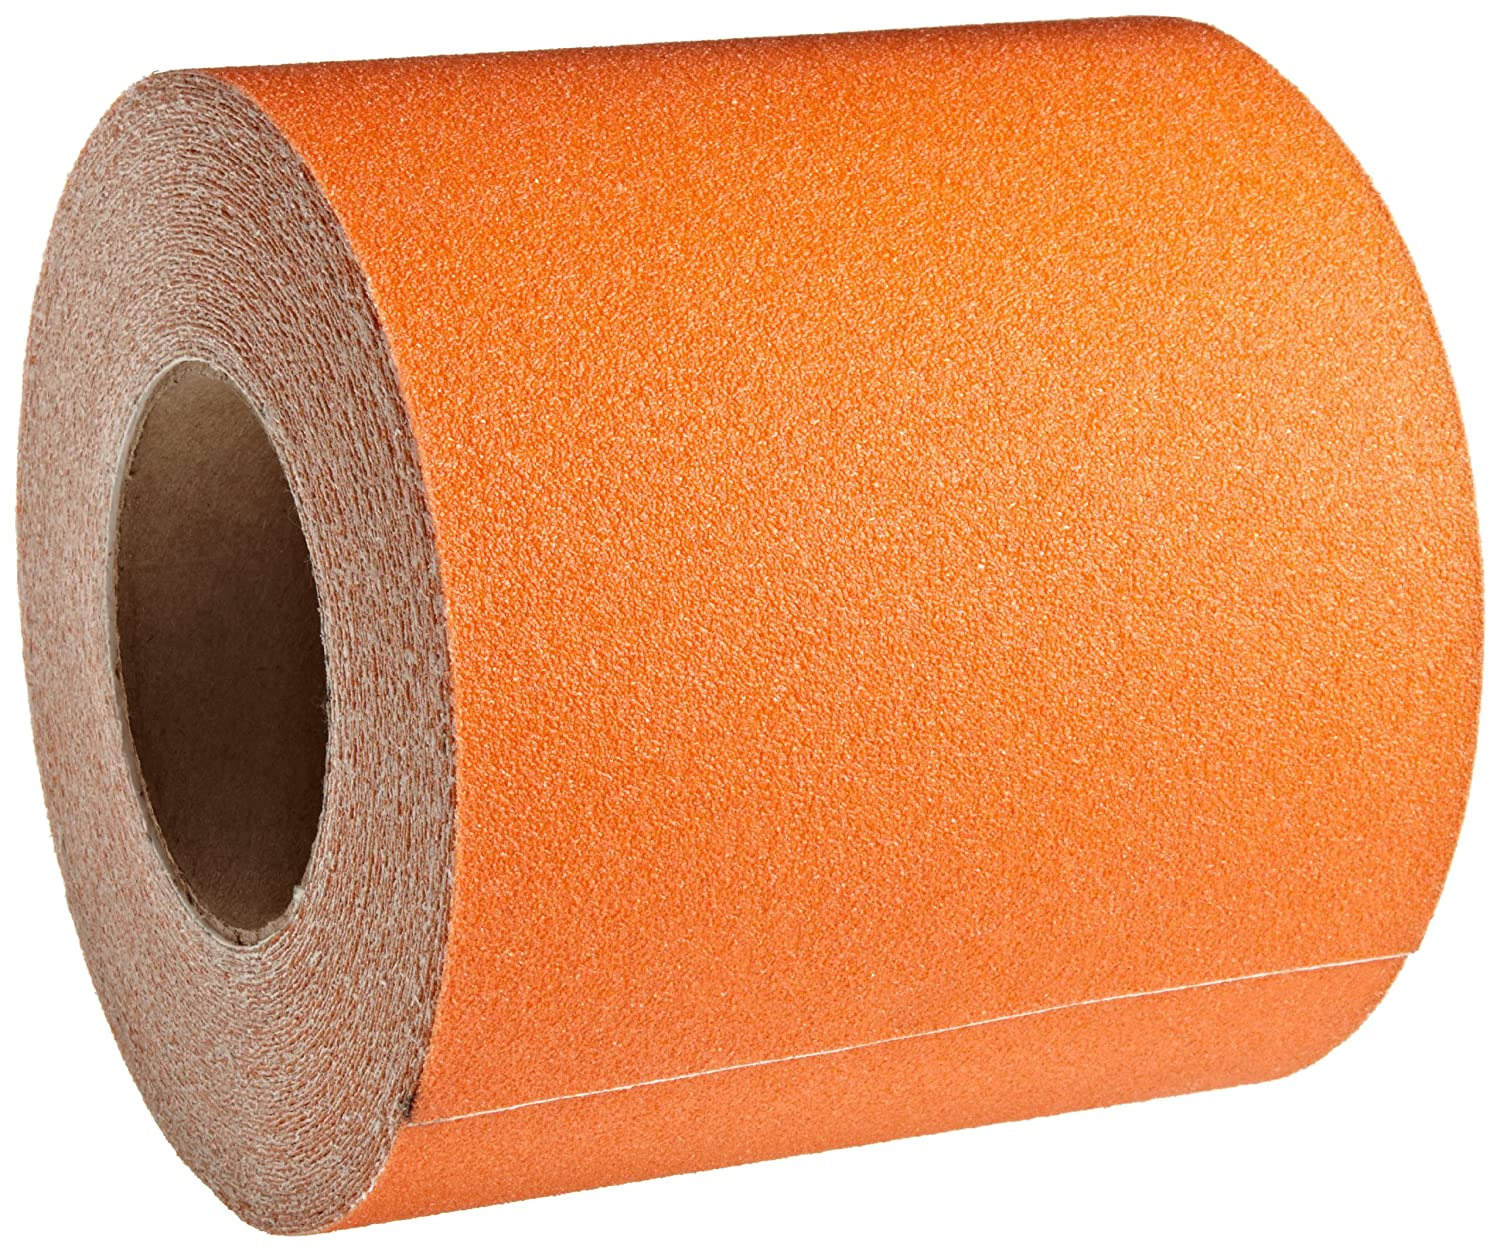 Jessup Safety Track 3320 Commercial Grade Non-Slip High Traction Safety Tape (60-Grit, Safety Orange, 6-Inch x 60-Foot Roll, Pack of 2)